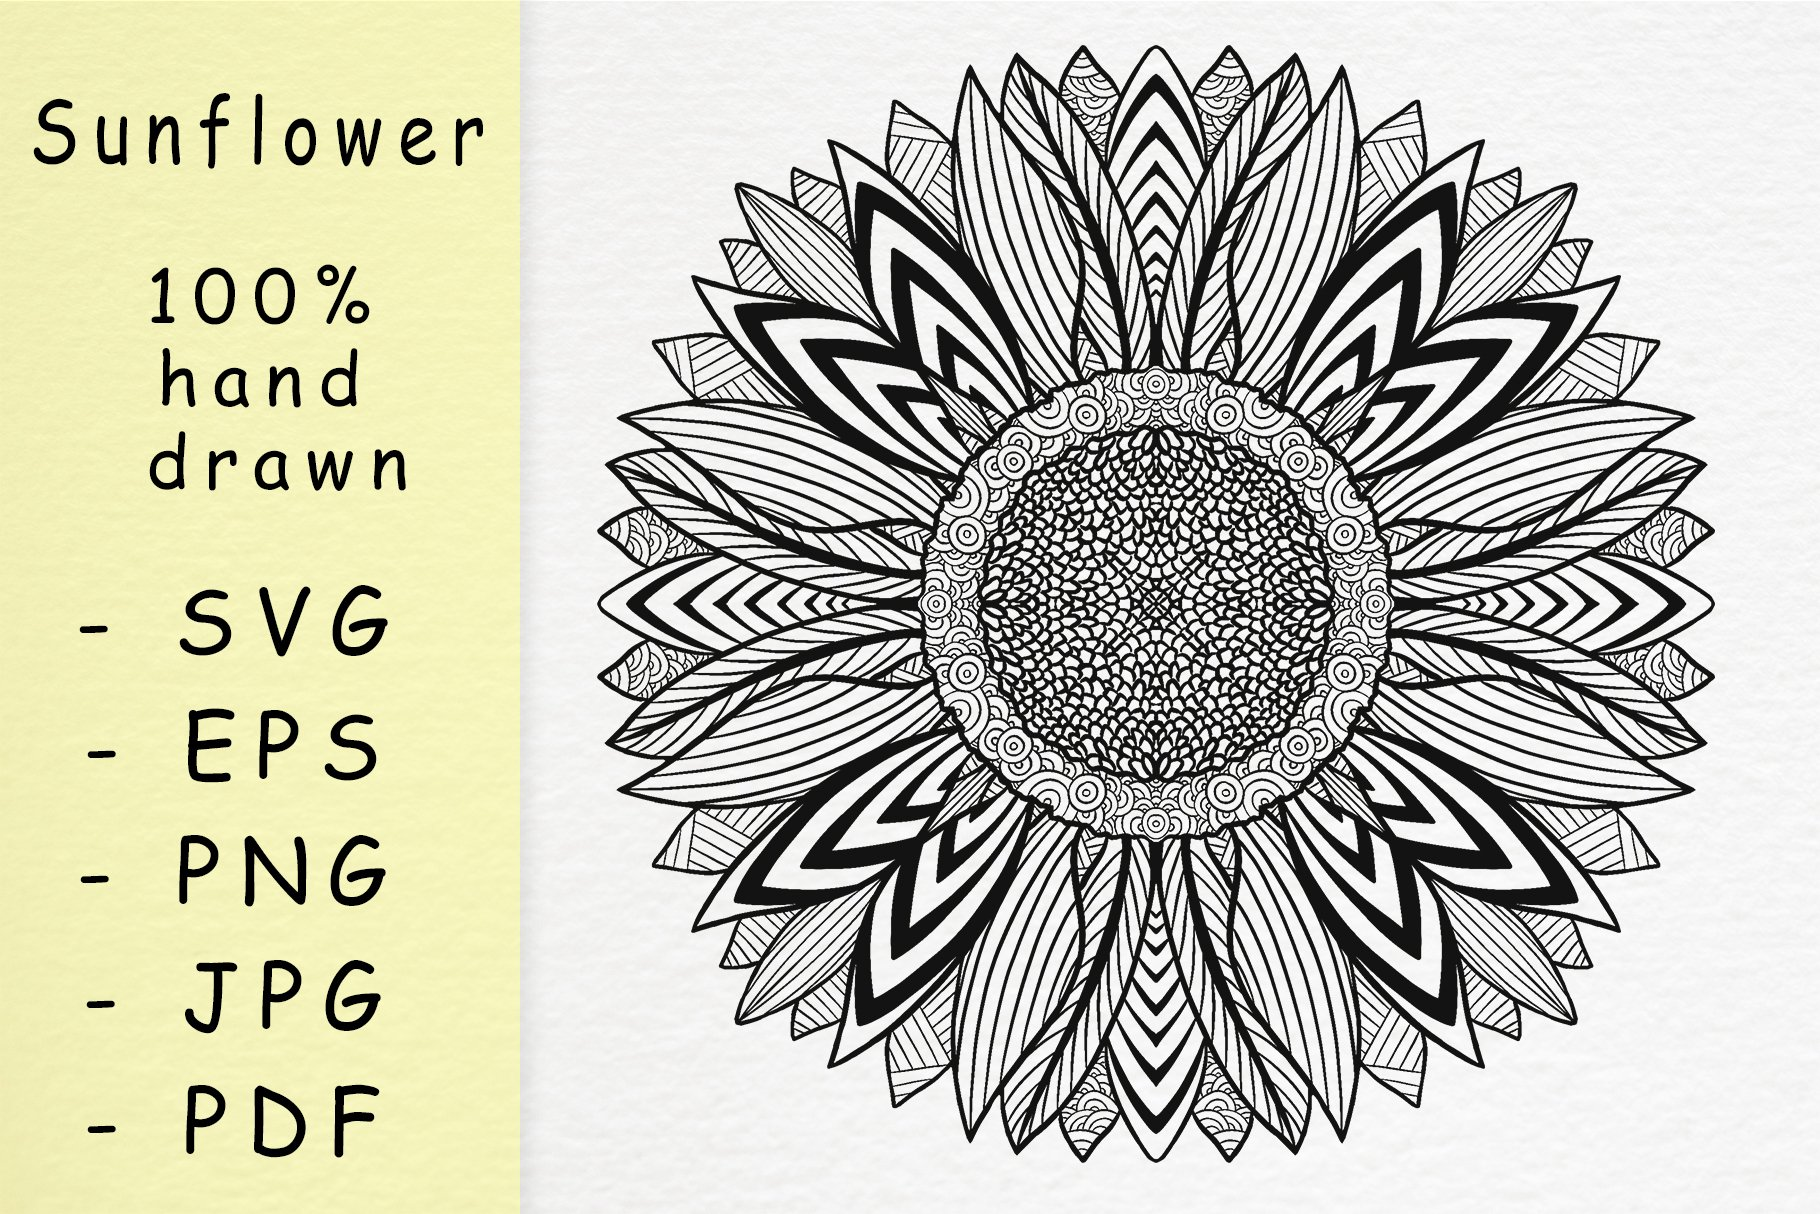 Hand drawn sunflower with patterns example image 1